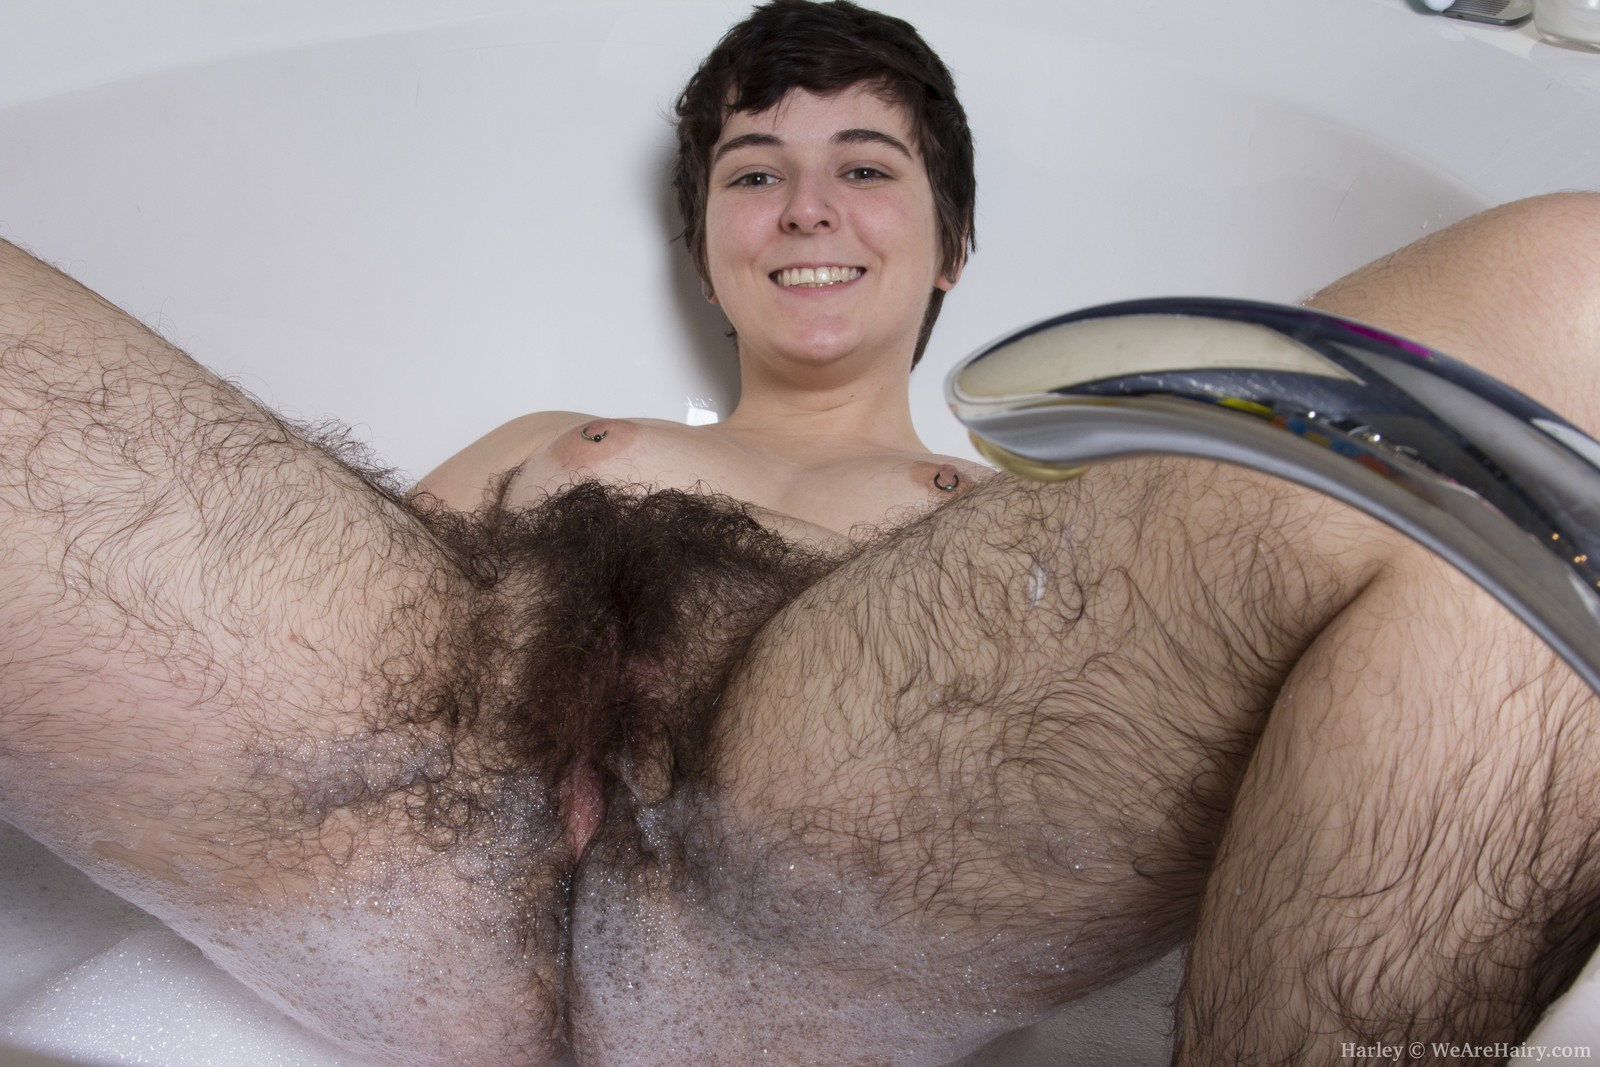 ... hairy women - fat old hairy women, hairy katerina - Wet Hairy Women